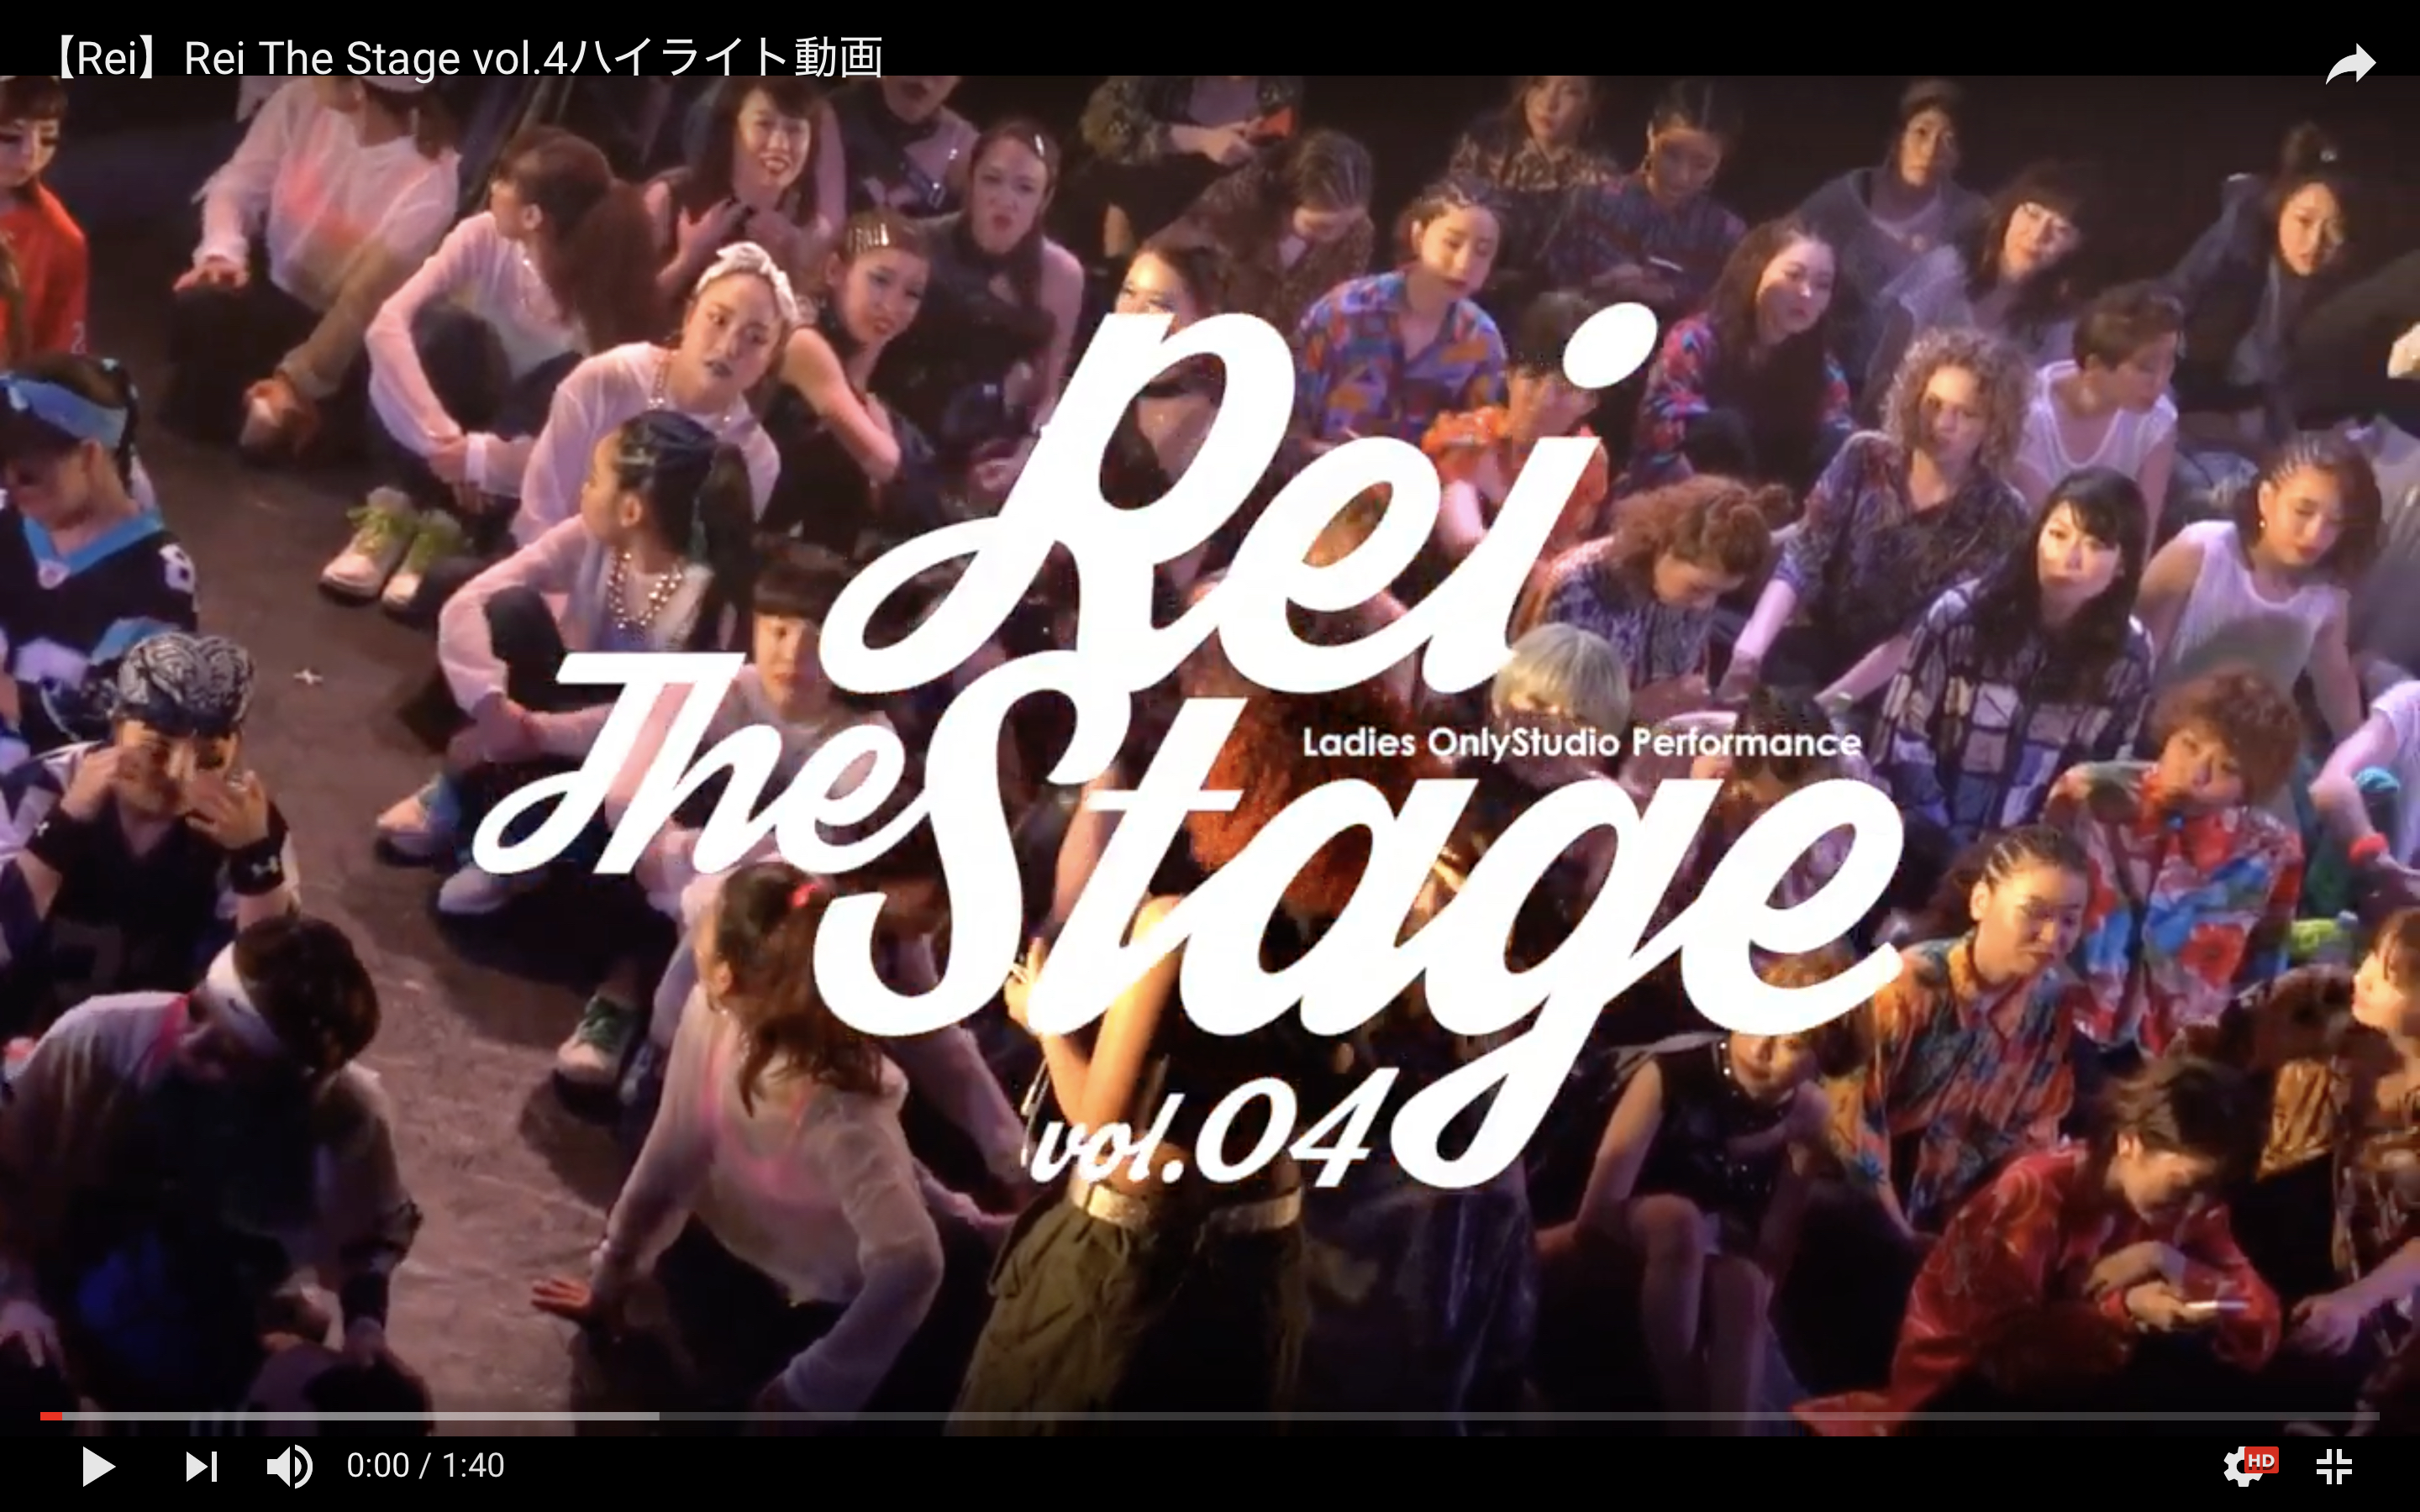 【Rei Dance Collection】Rei The Stage vol.4 ハイライト映像公開!